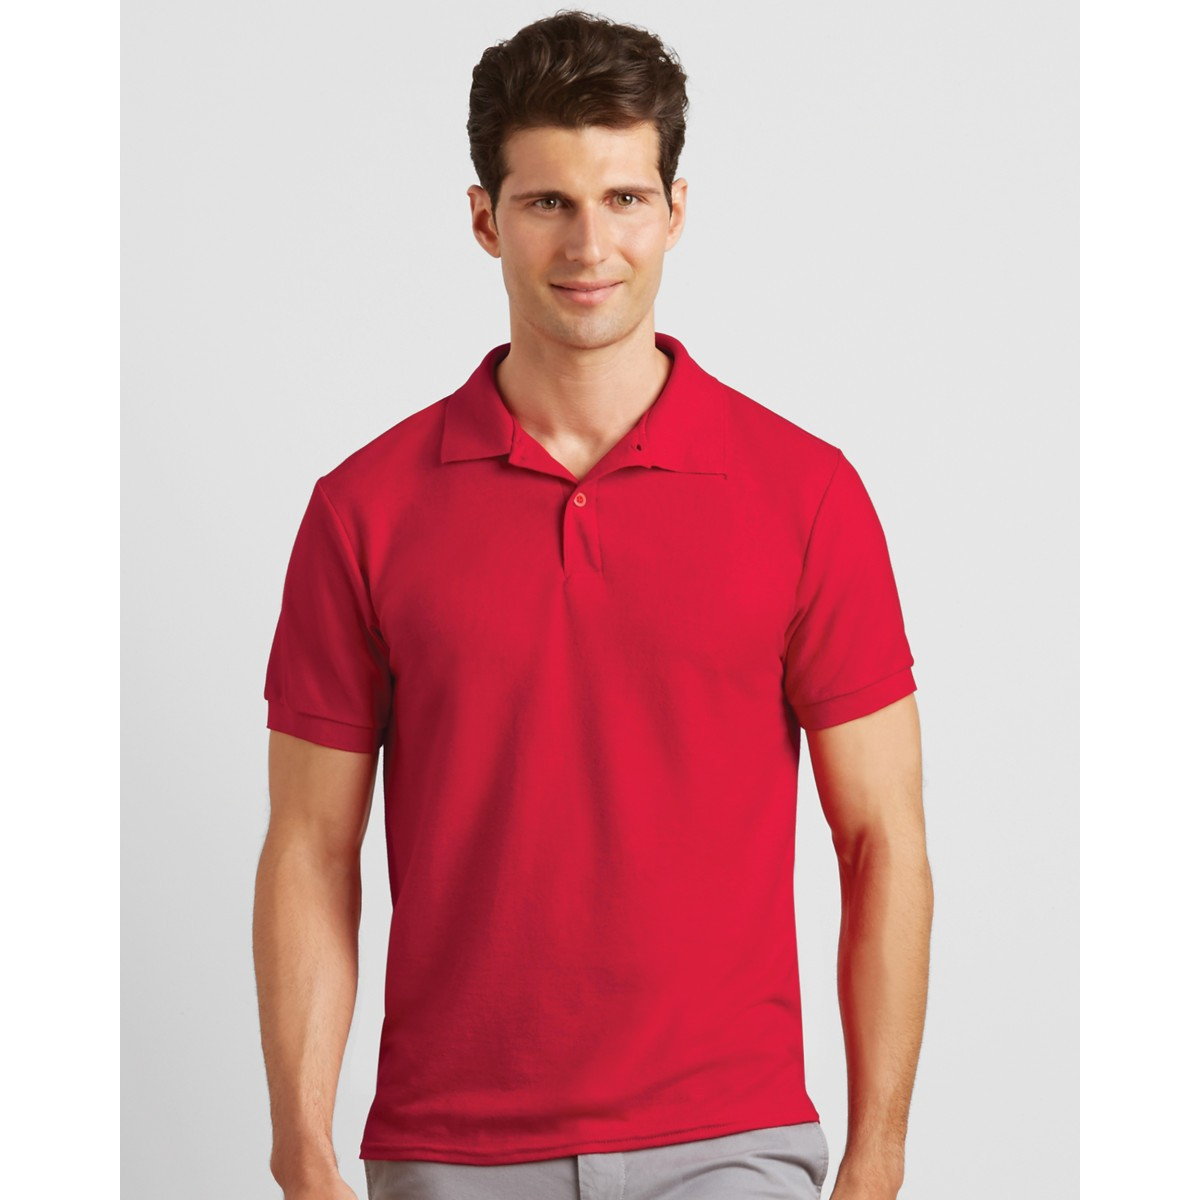 326c5eb1296 Gildan Dryblend Mens Double Pique Personalised Polo Shirts